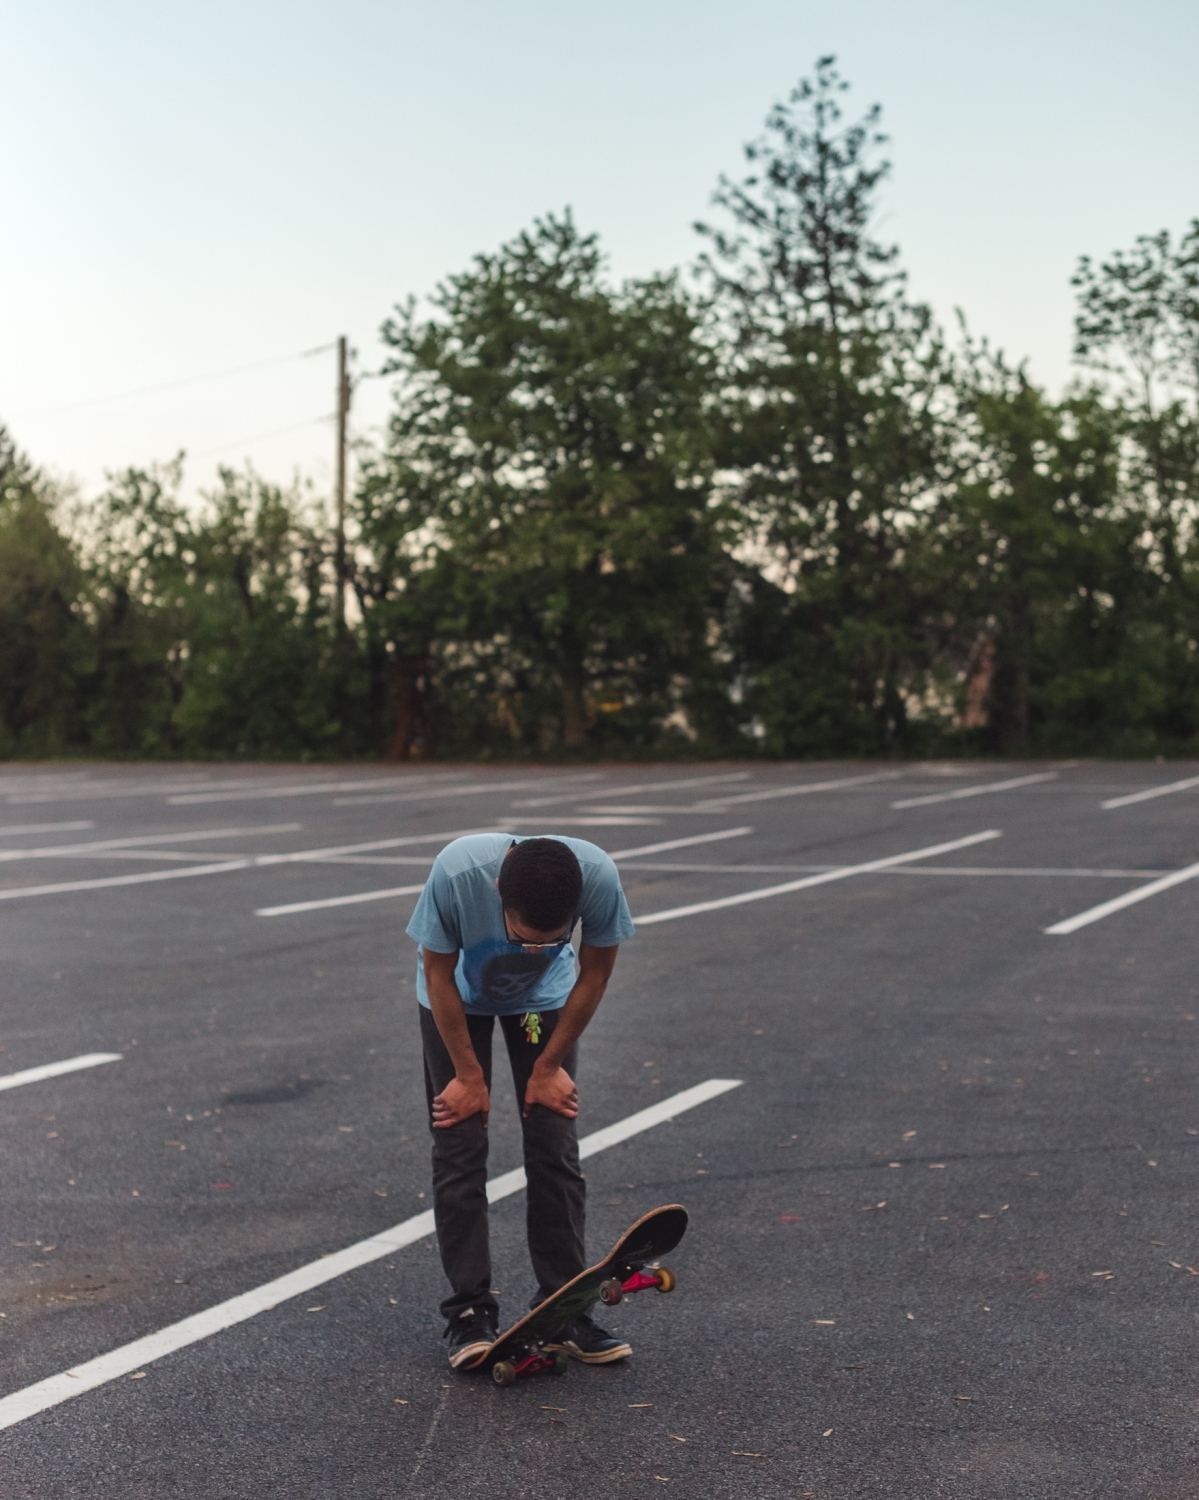 Jamesy catching his breath from skating, 2019